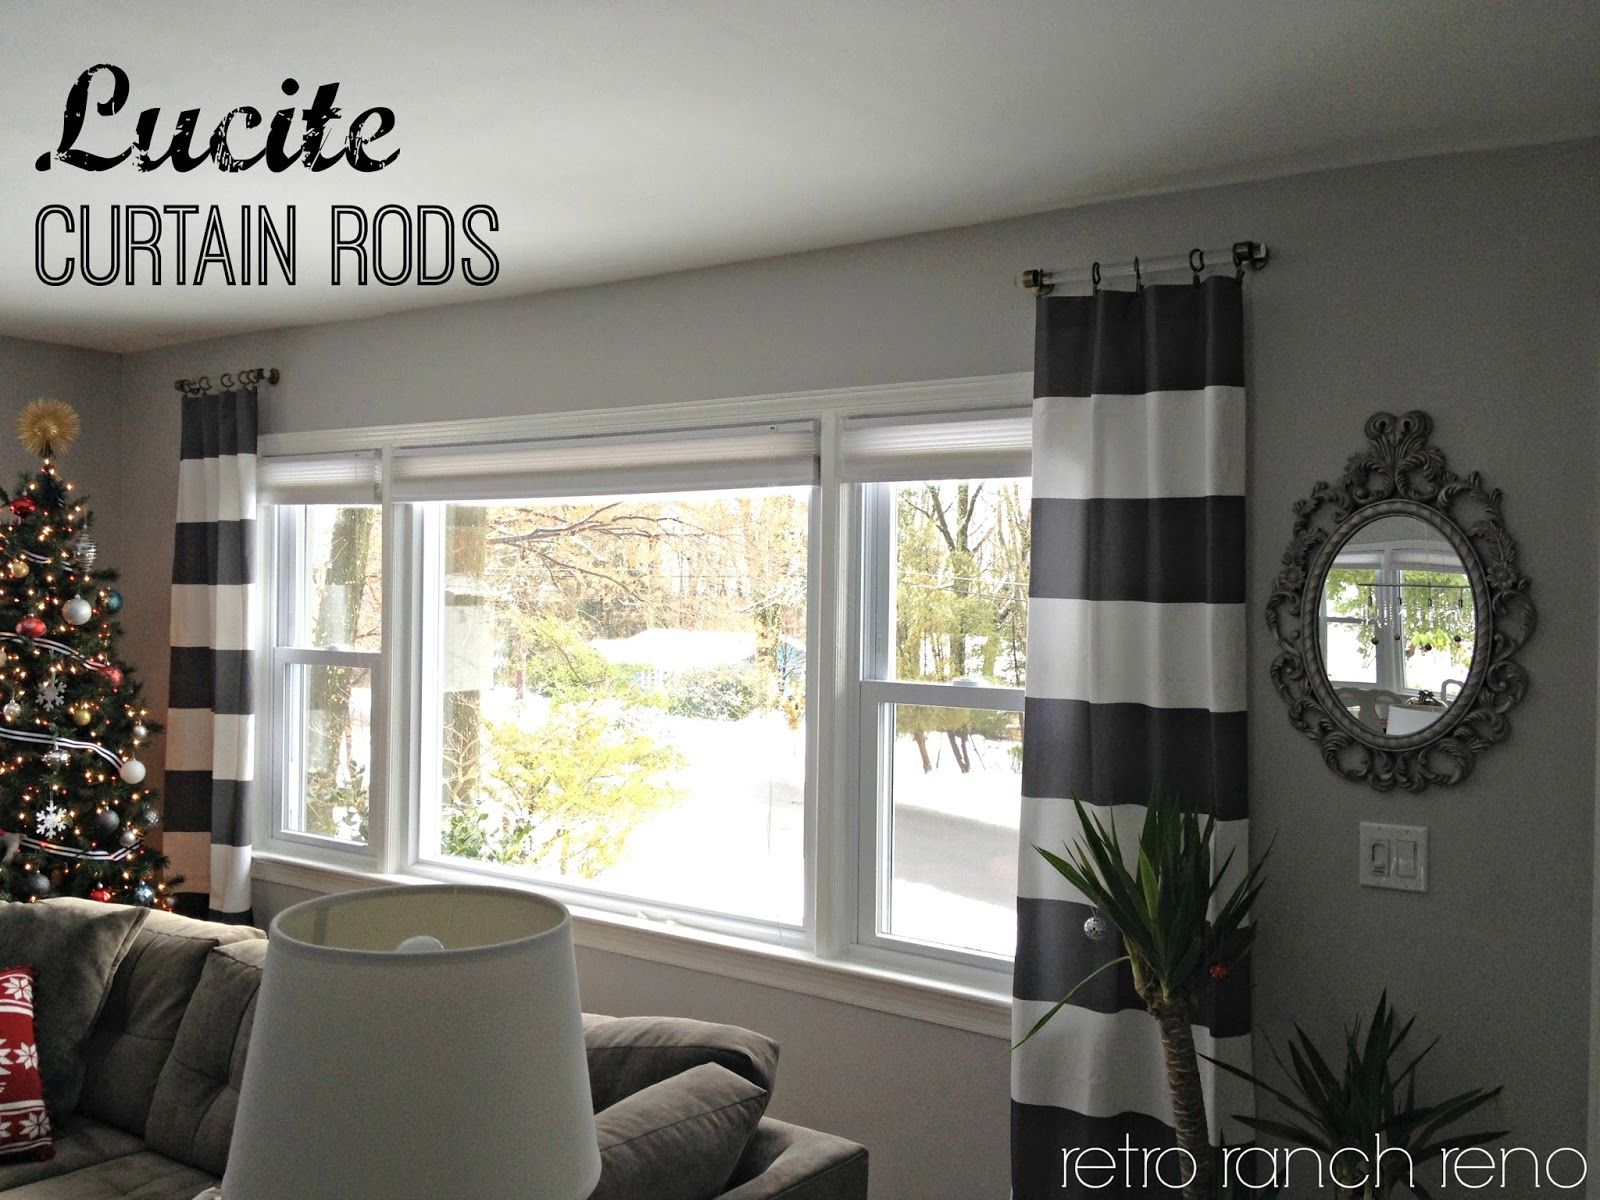 Enchanting Short Curtain Rods For Decorating A Room: Amusing ...